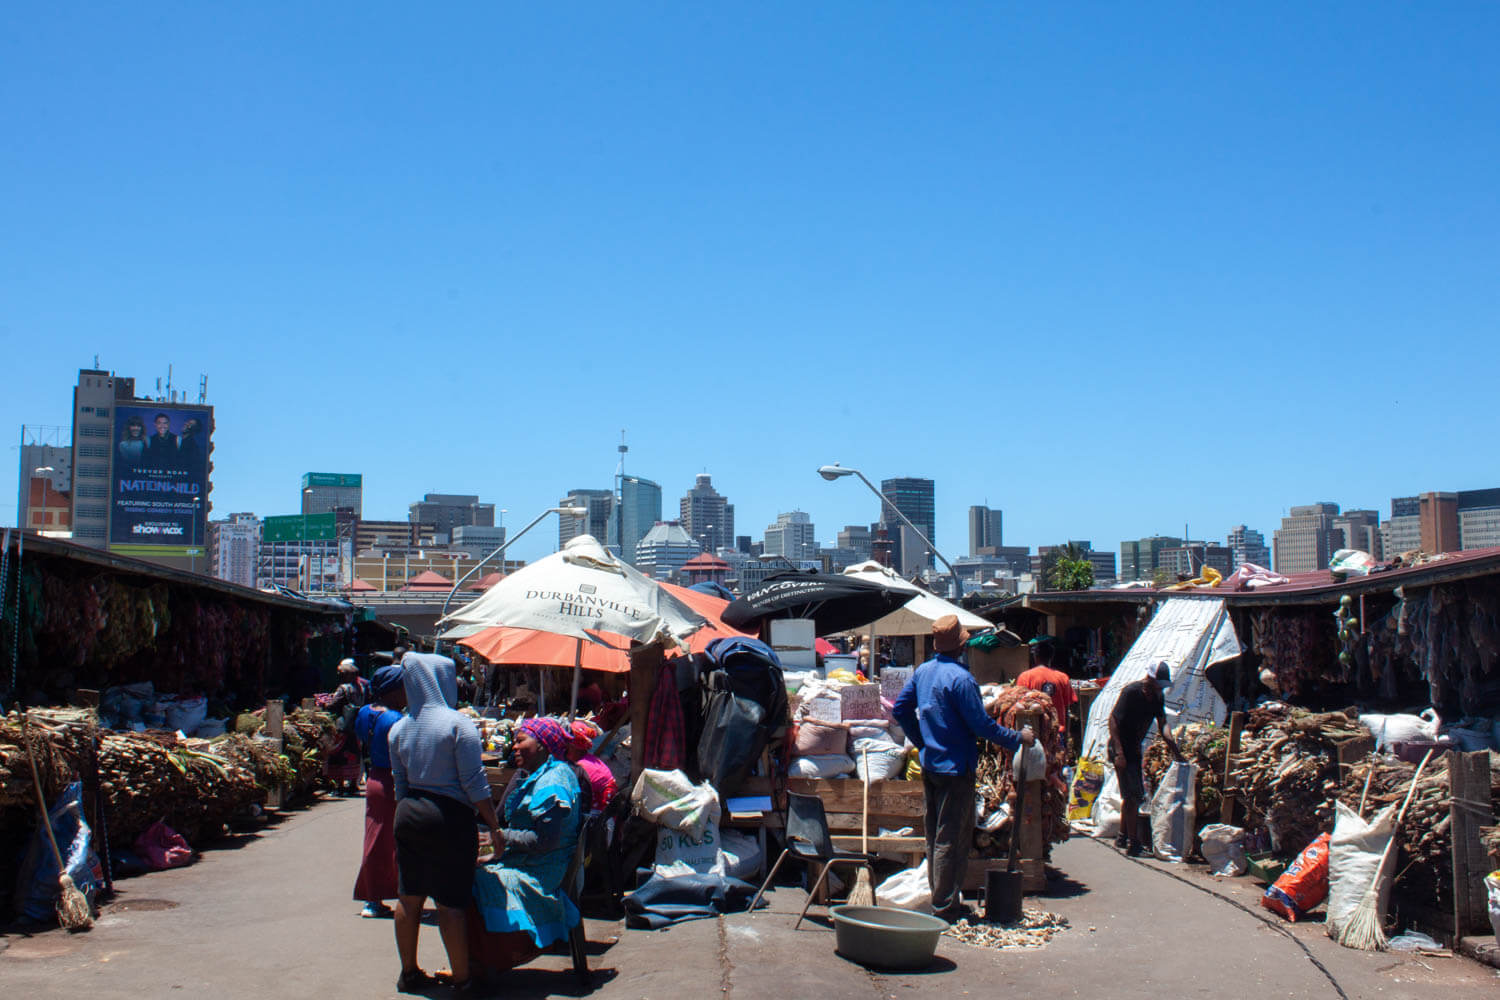 Downtown Durban and Warwick Market